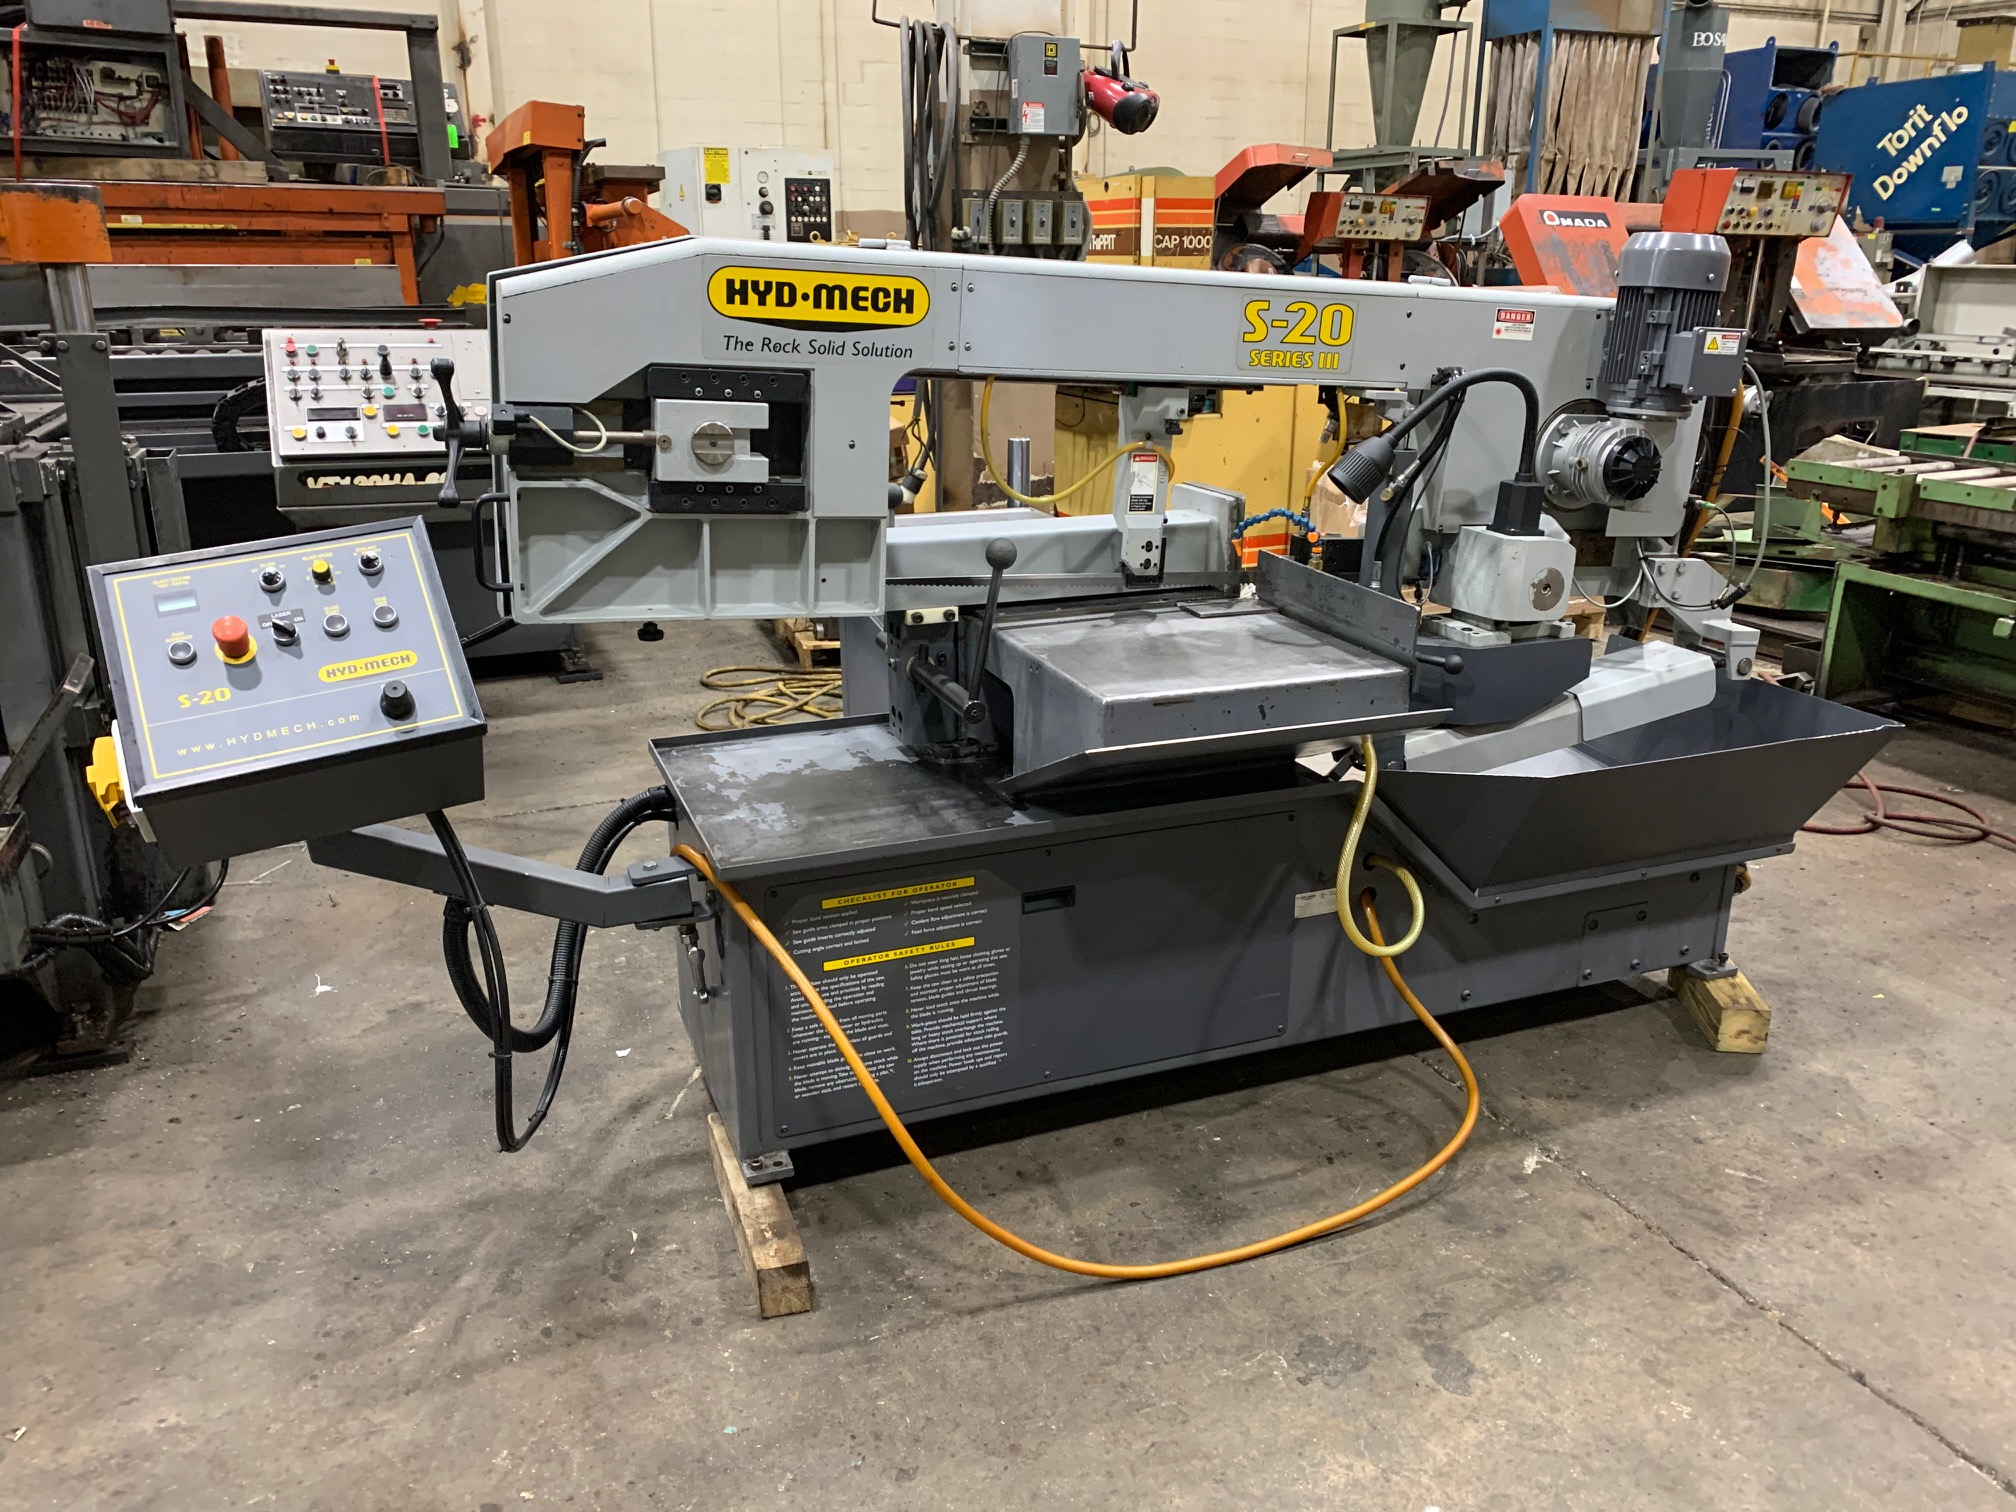 """USED 13"""" X 18"""" HYD-MECH MODEL S-20 SERIES III HORIZONTAL MITERING BANDSAW, STOCK# 10653, YEAR 2012"""